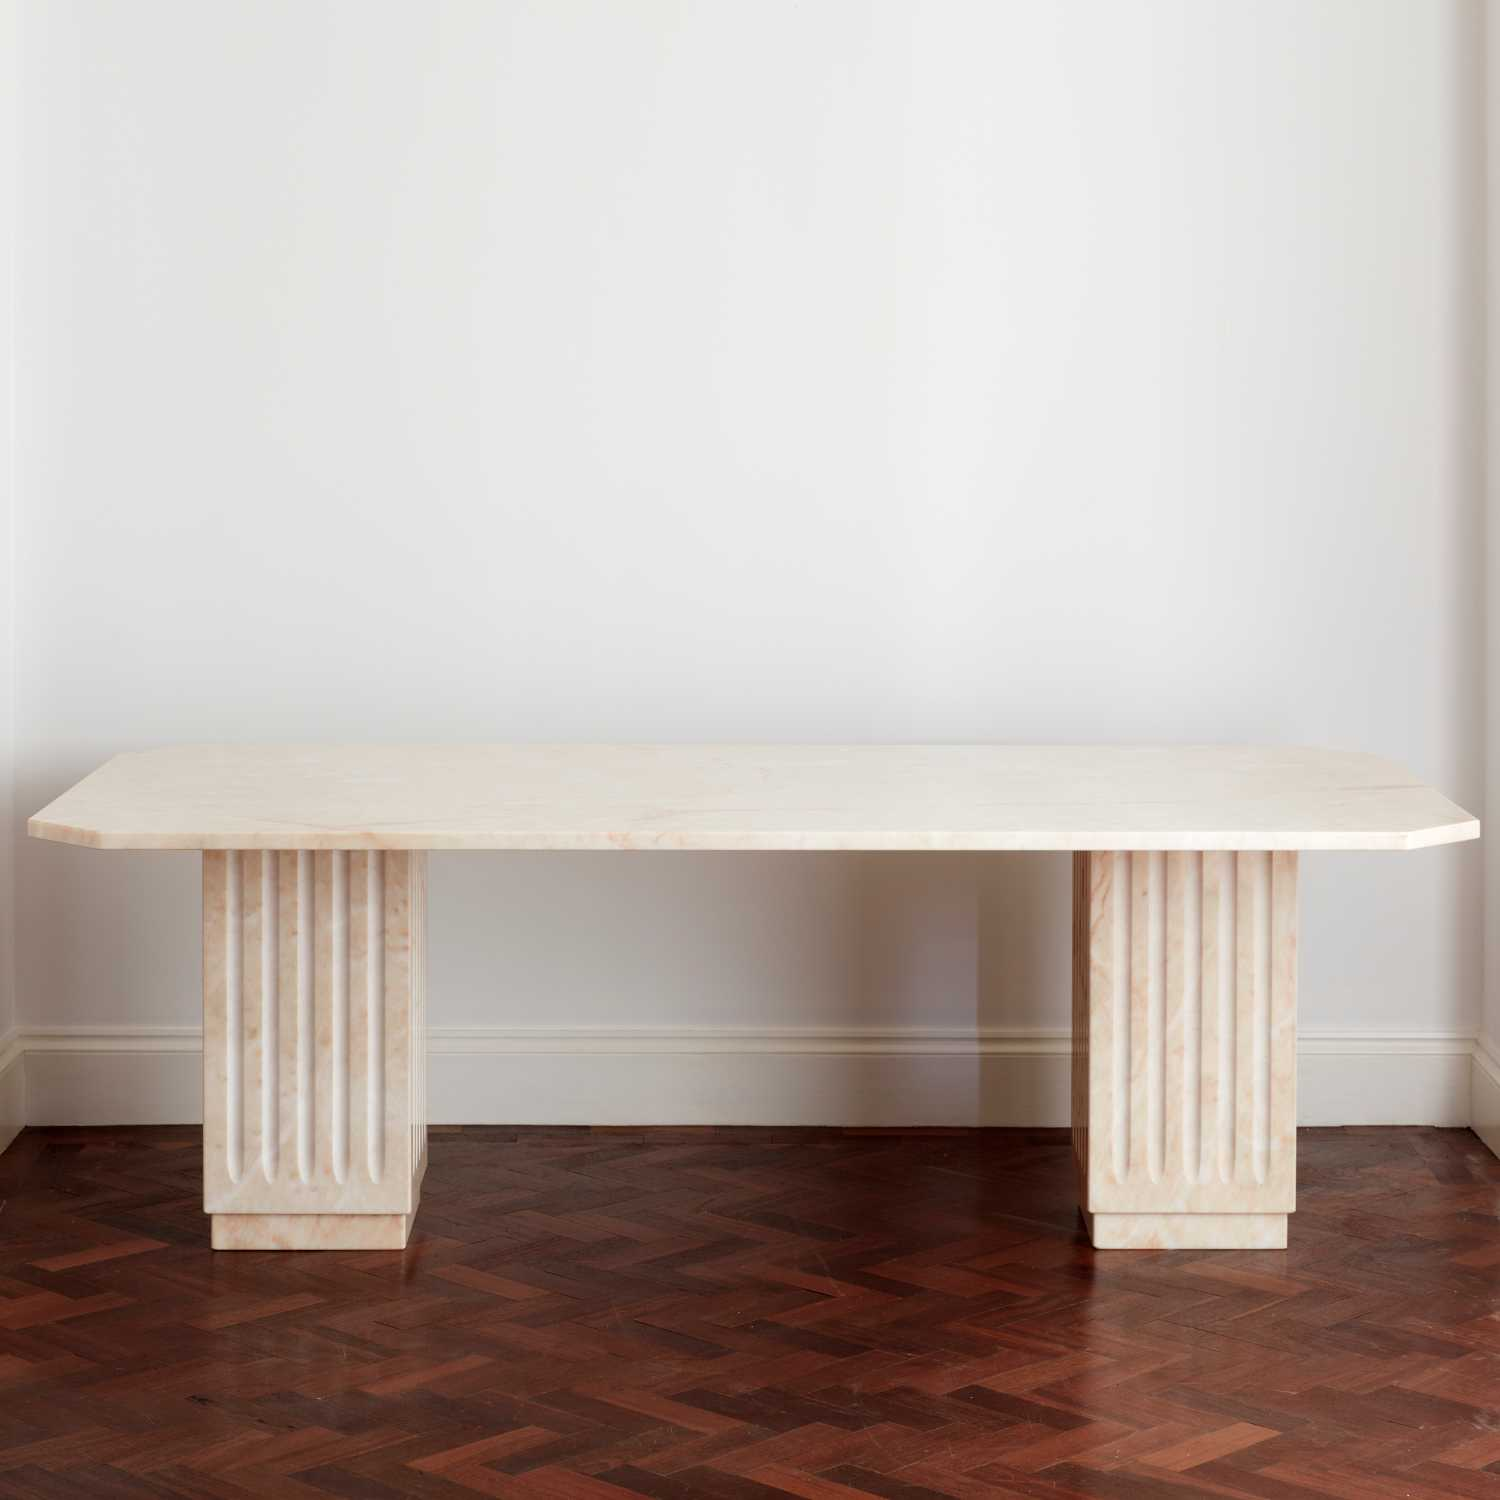 Vintage Willy Rizzo Style Pale Peach Marble Dining Table Au Bespoke